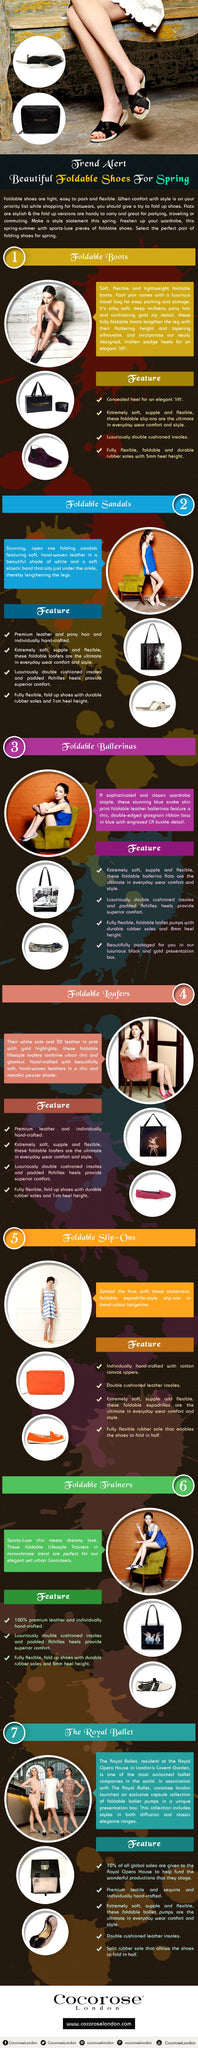 Spring trend foldable shoes infographic